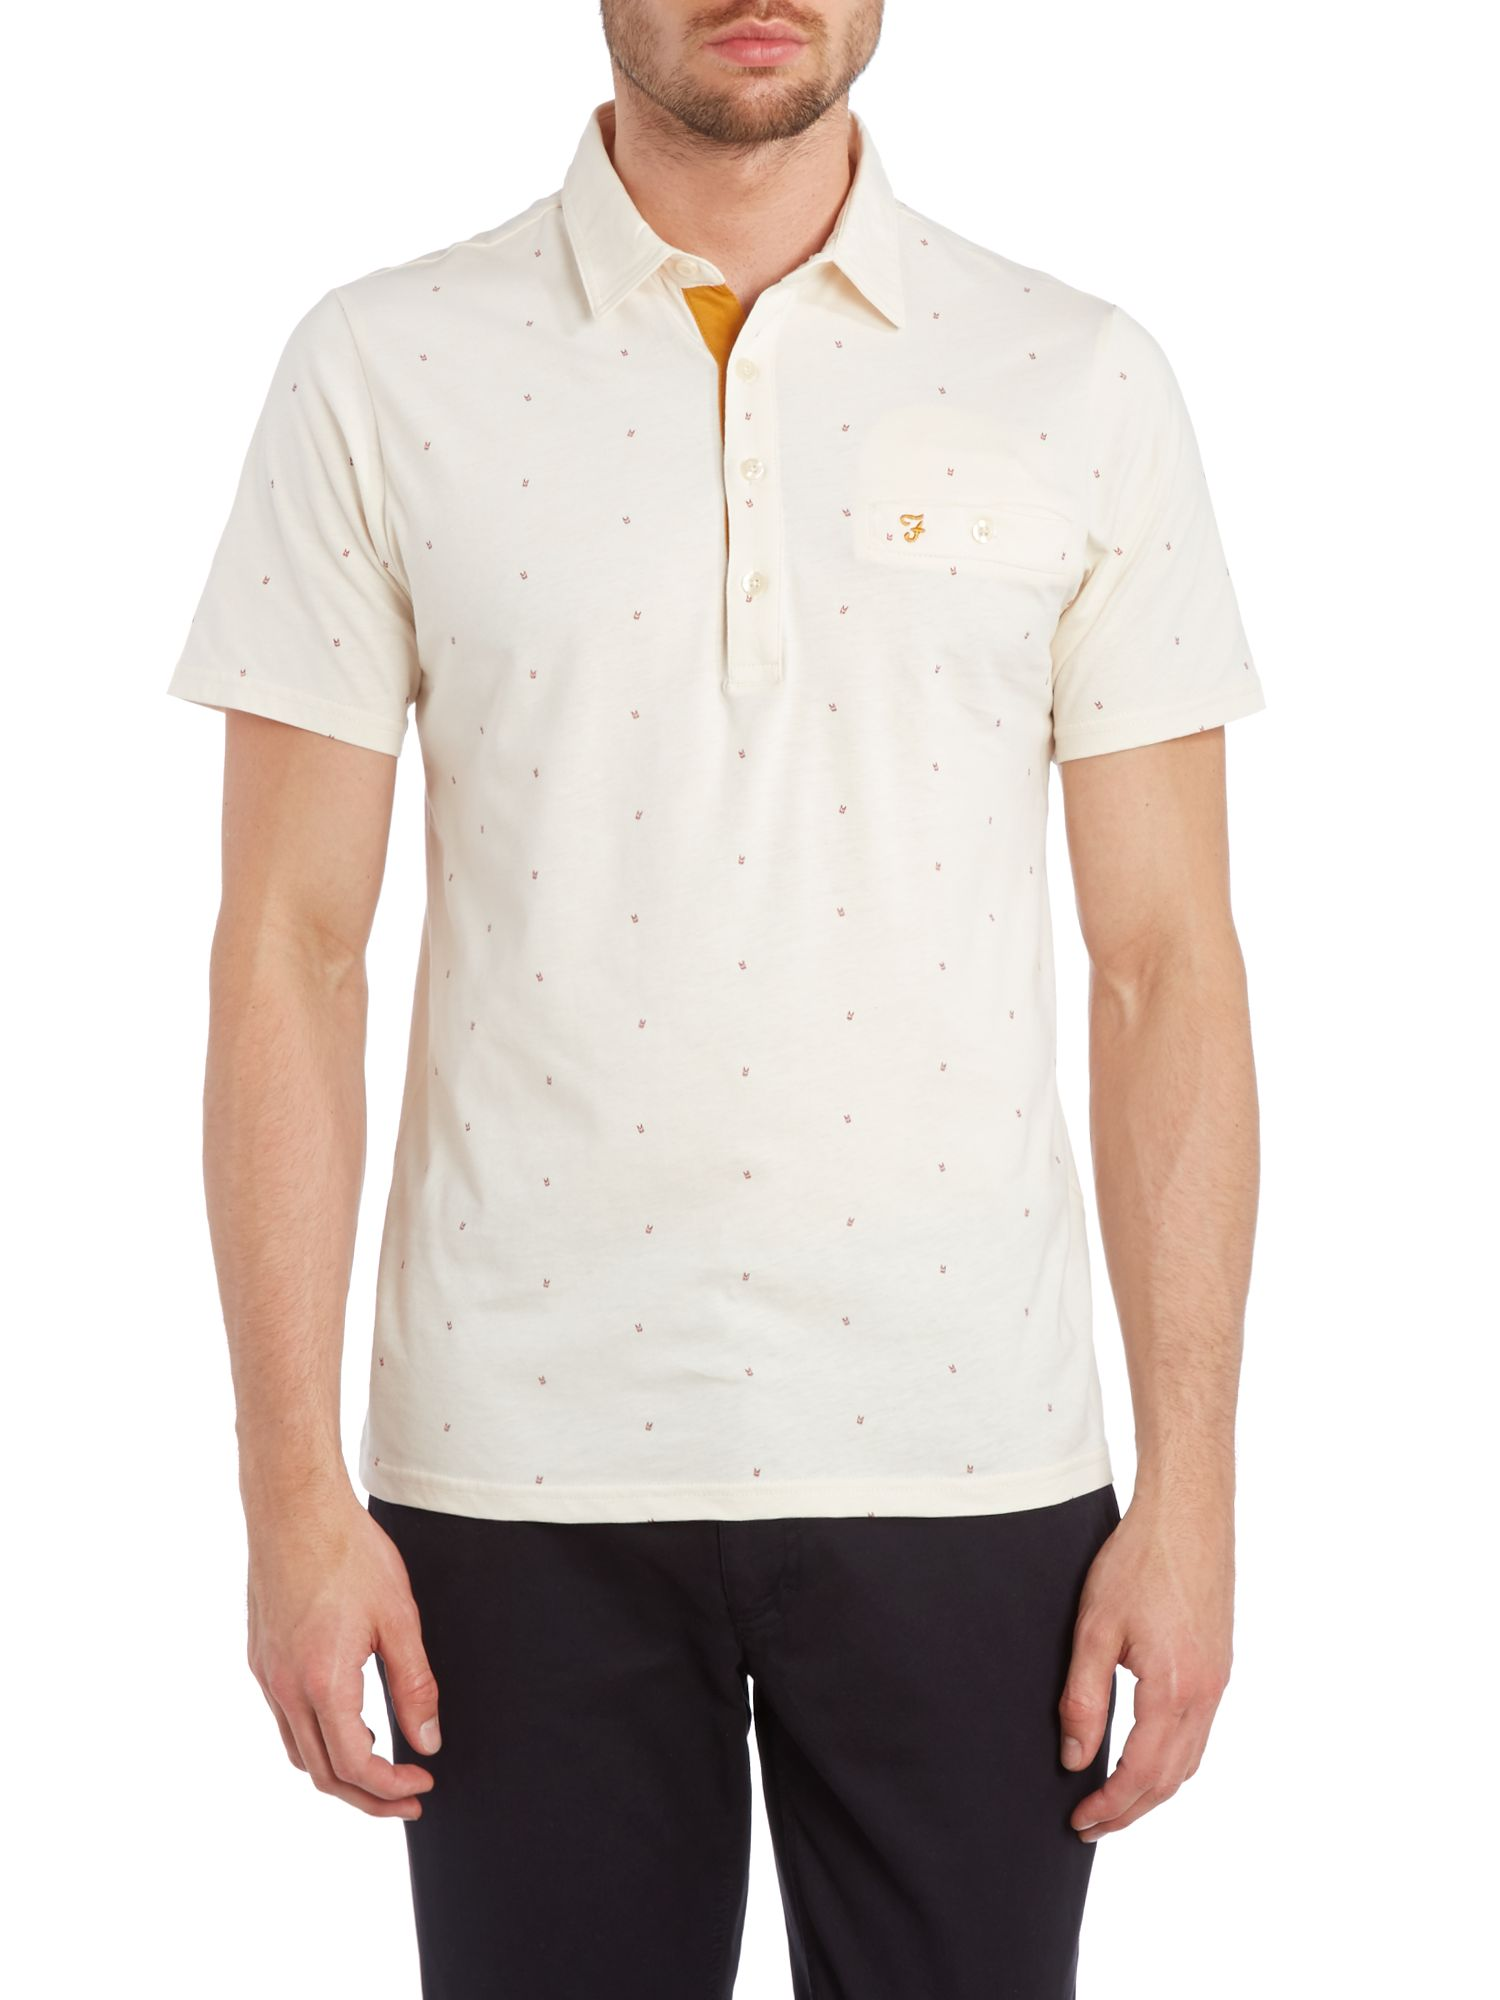 Sundale print body polo shirt